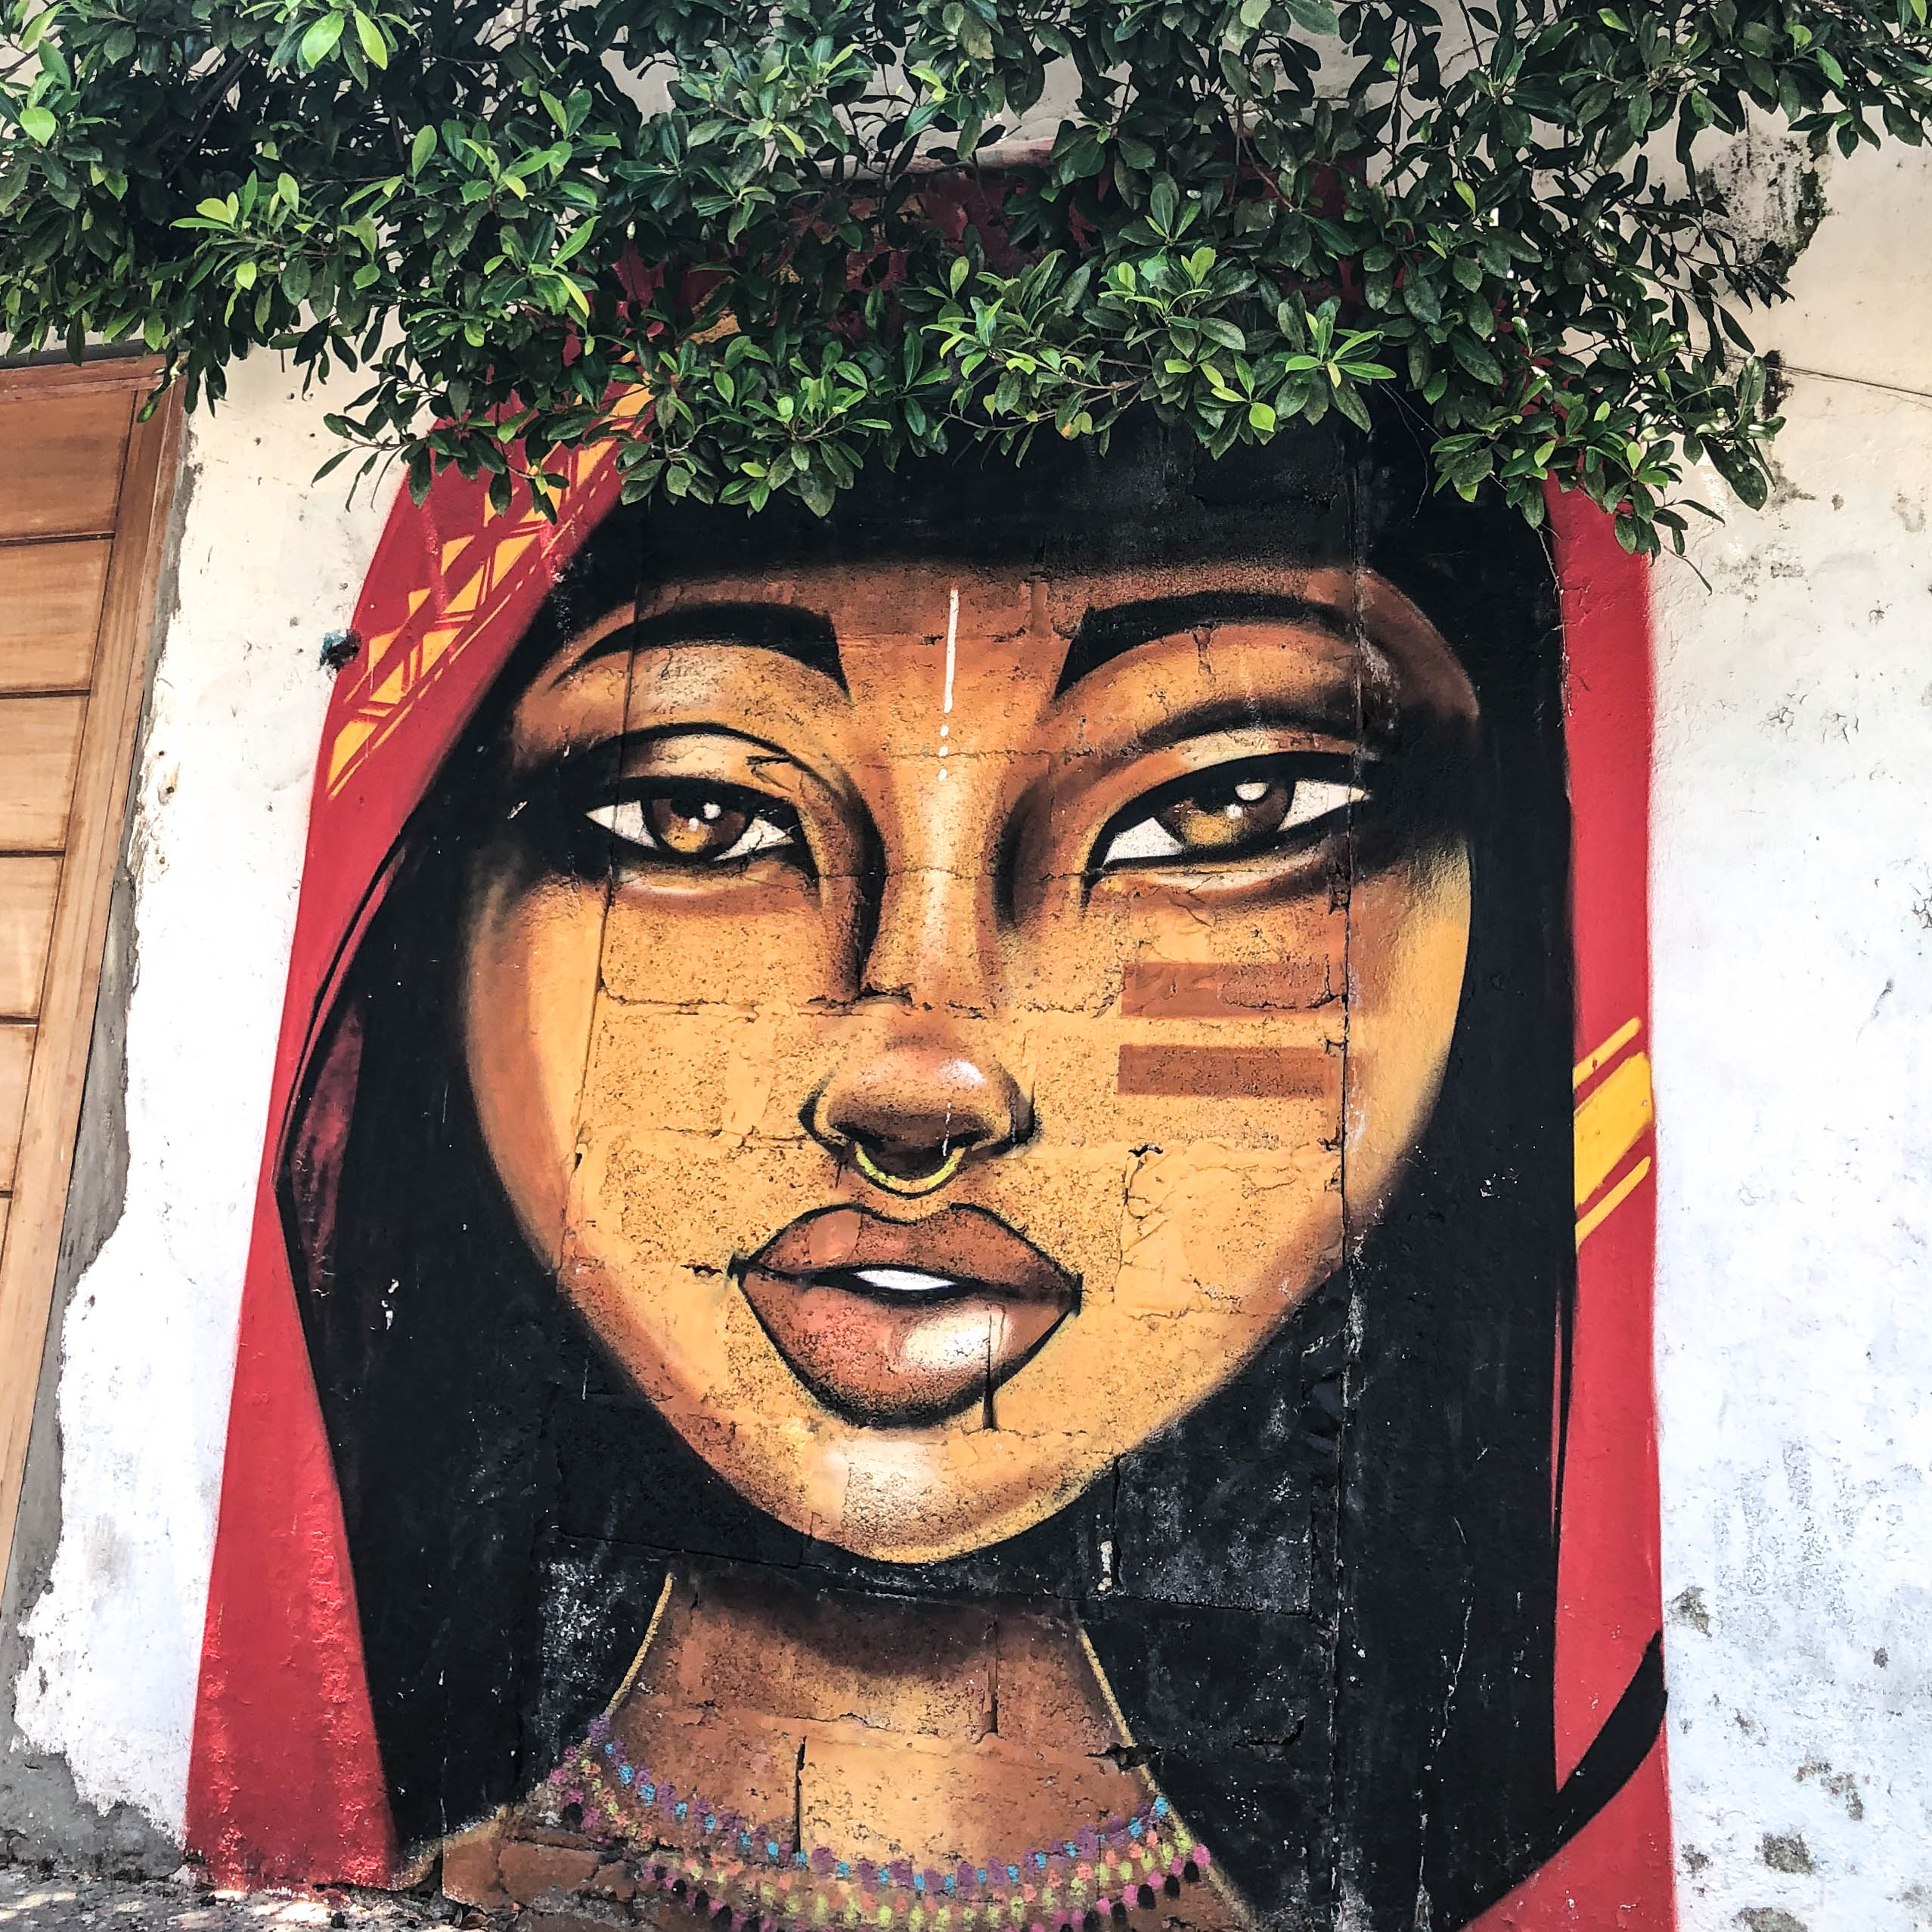 Casco Viejo Walking Tour - Street Art